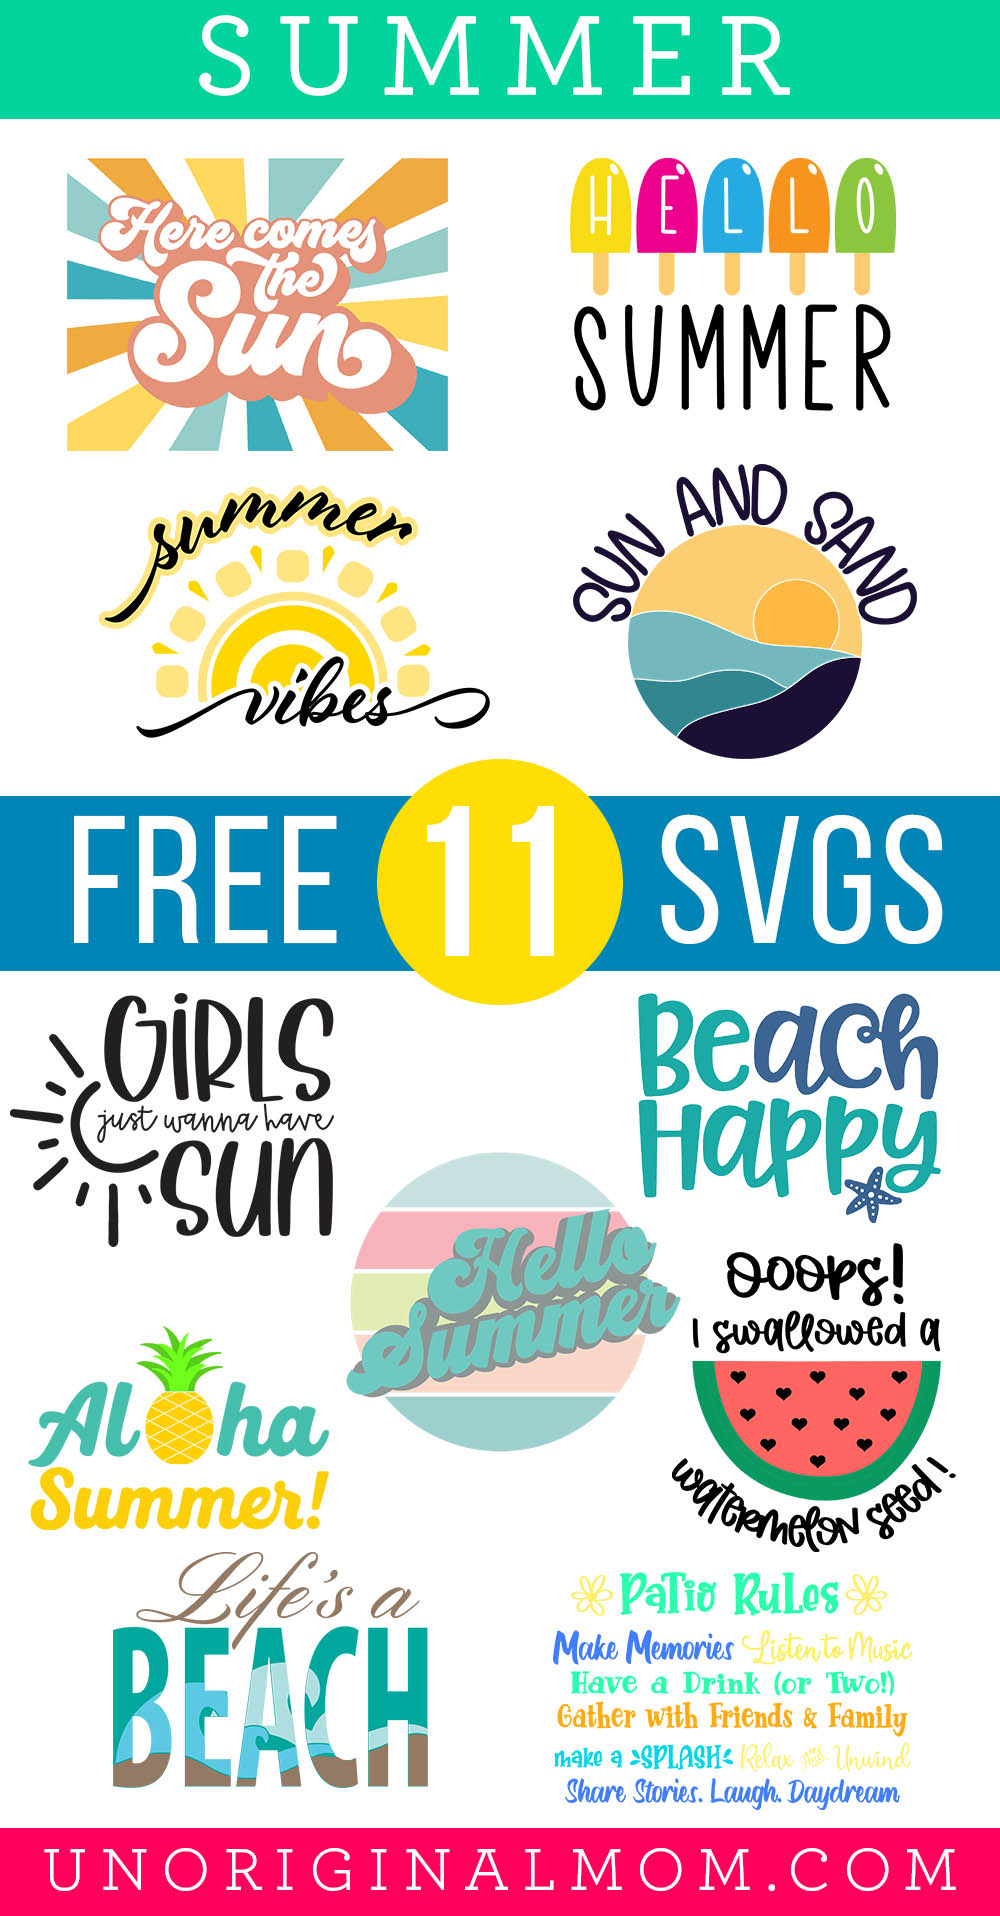 Free Summer SVGs for your Silhouette or Cricut - perfect for summer tees and tanks, beach bags, summer decor, and more!